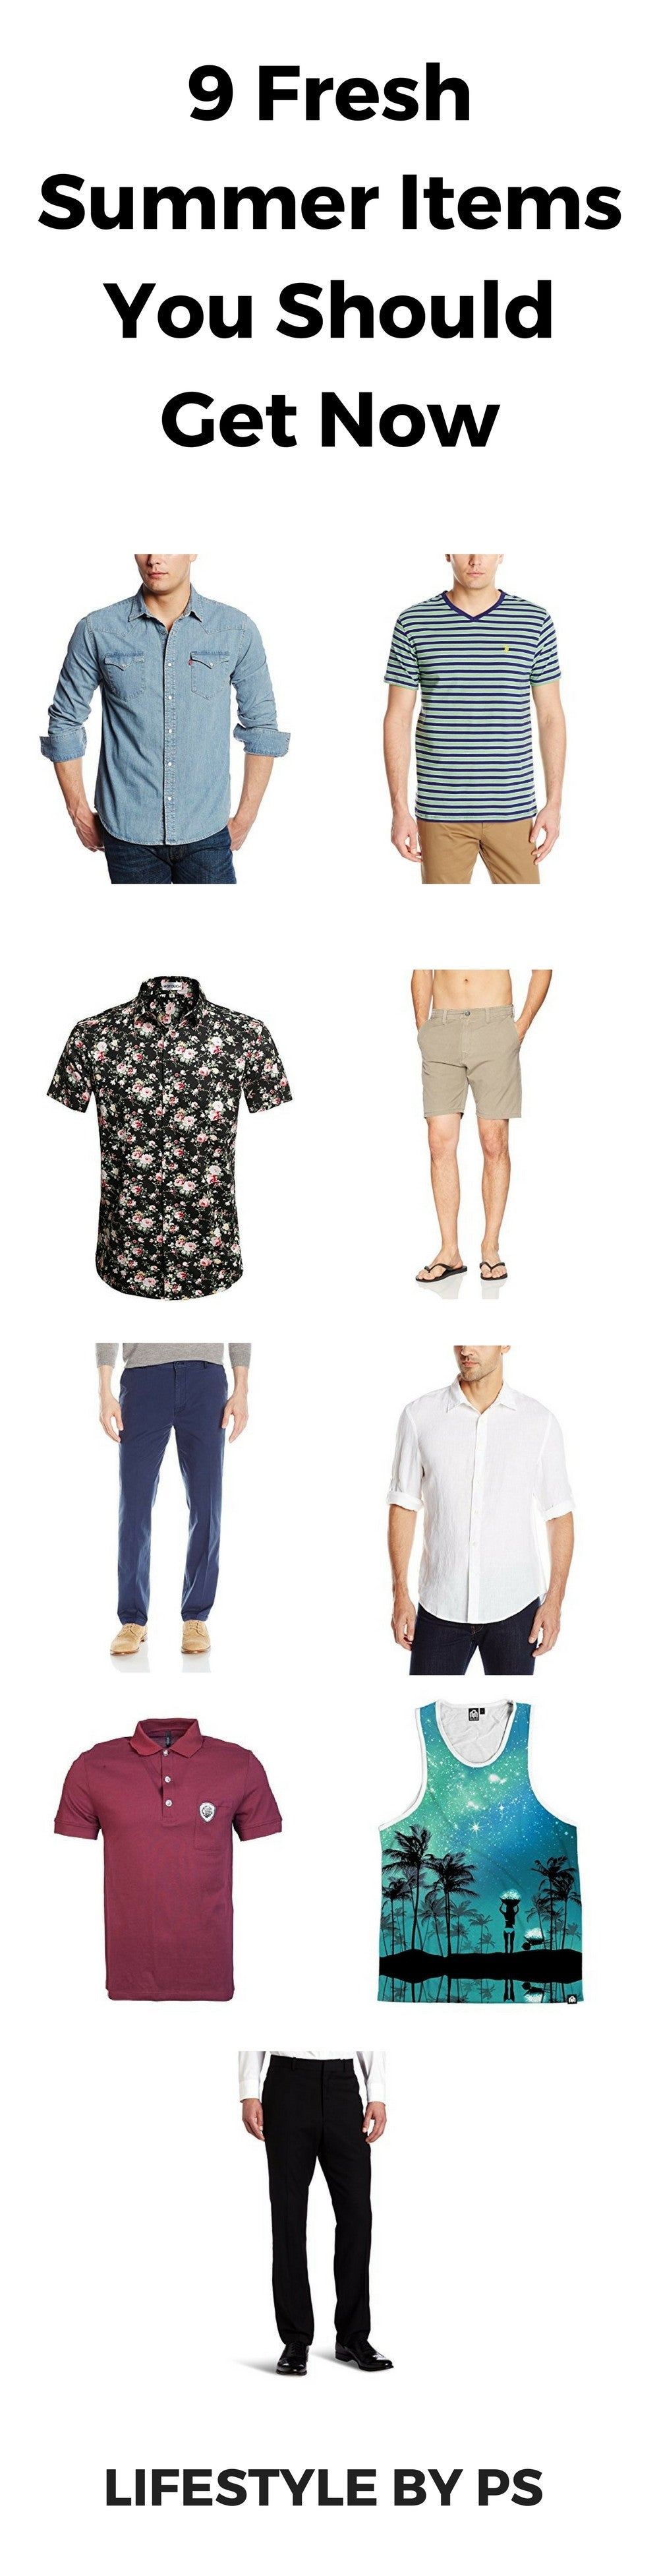 summer wardrobe items for men